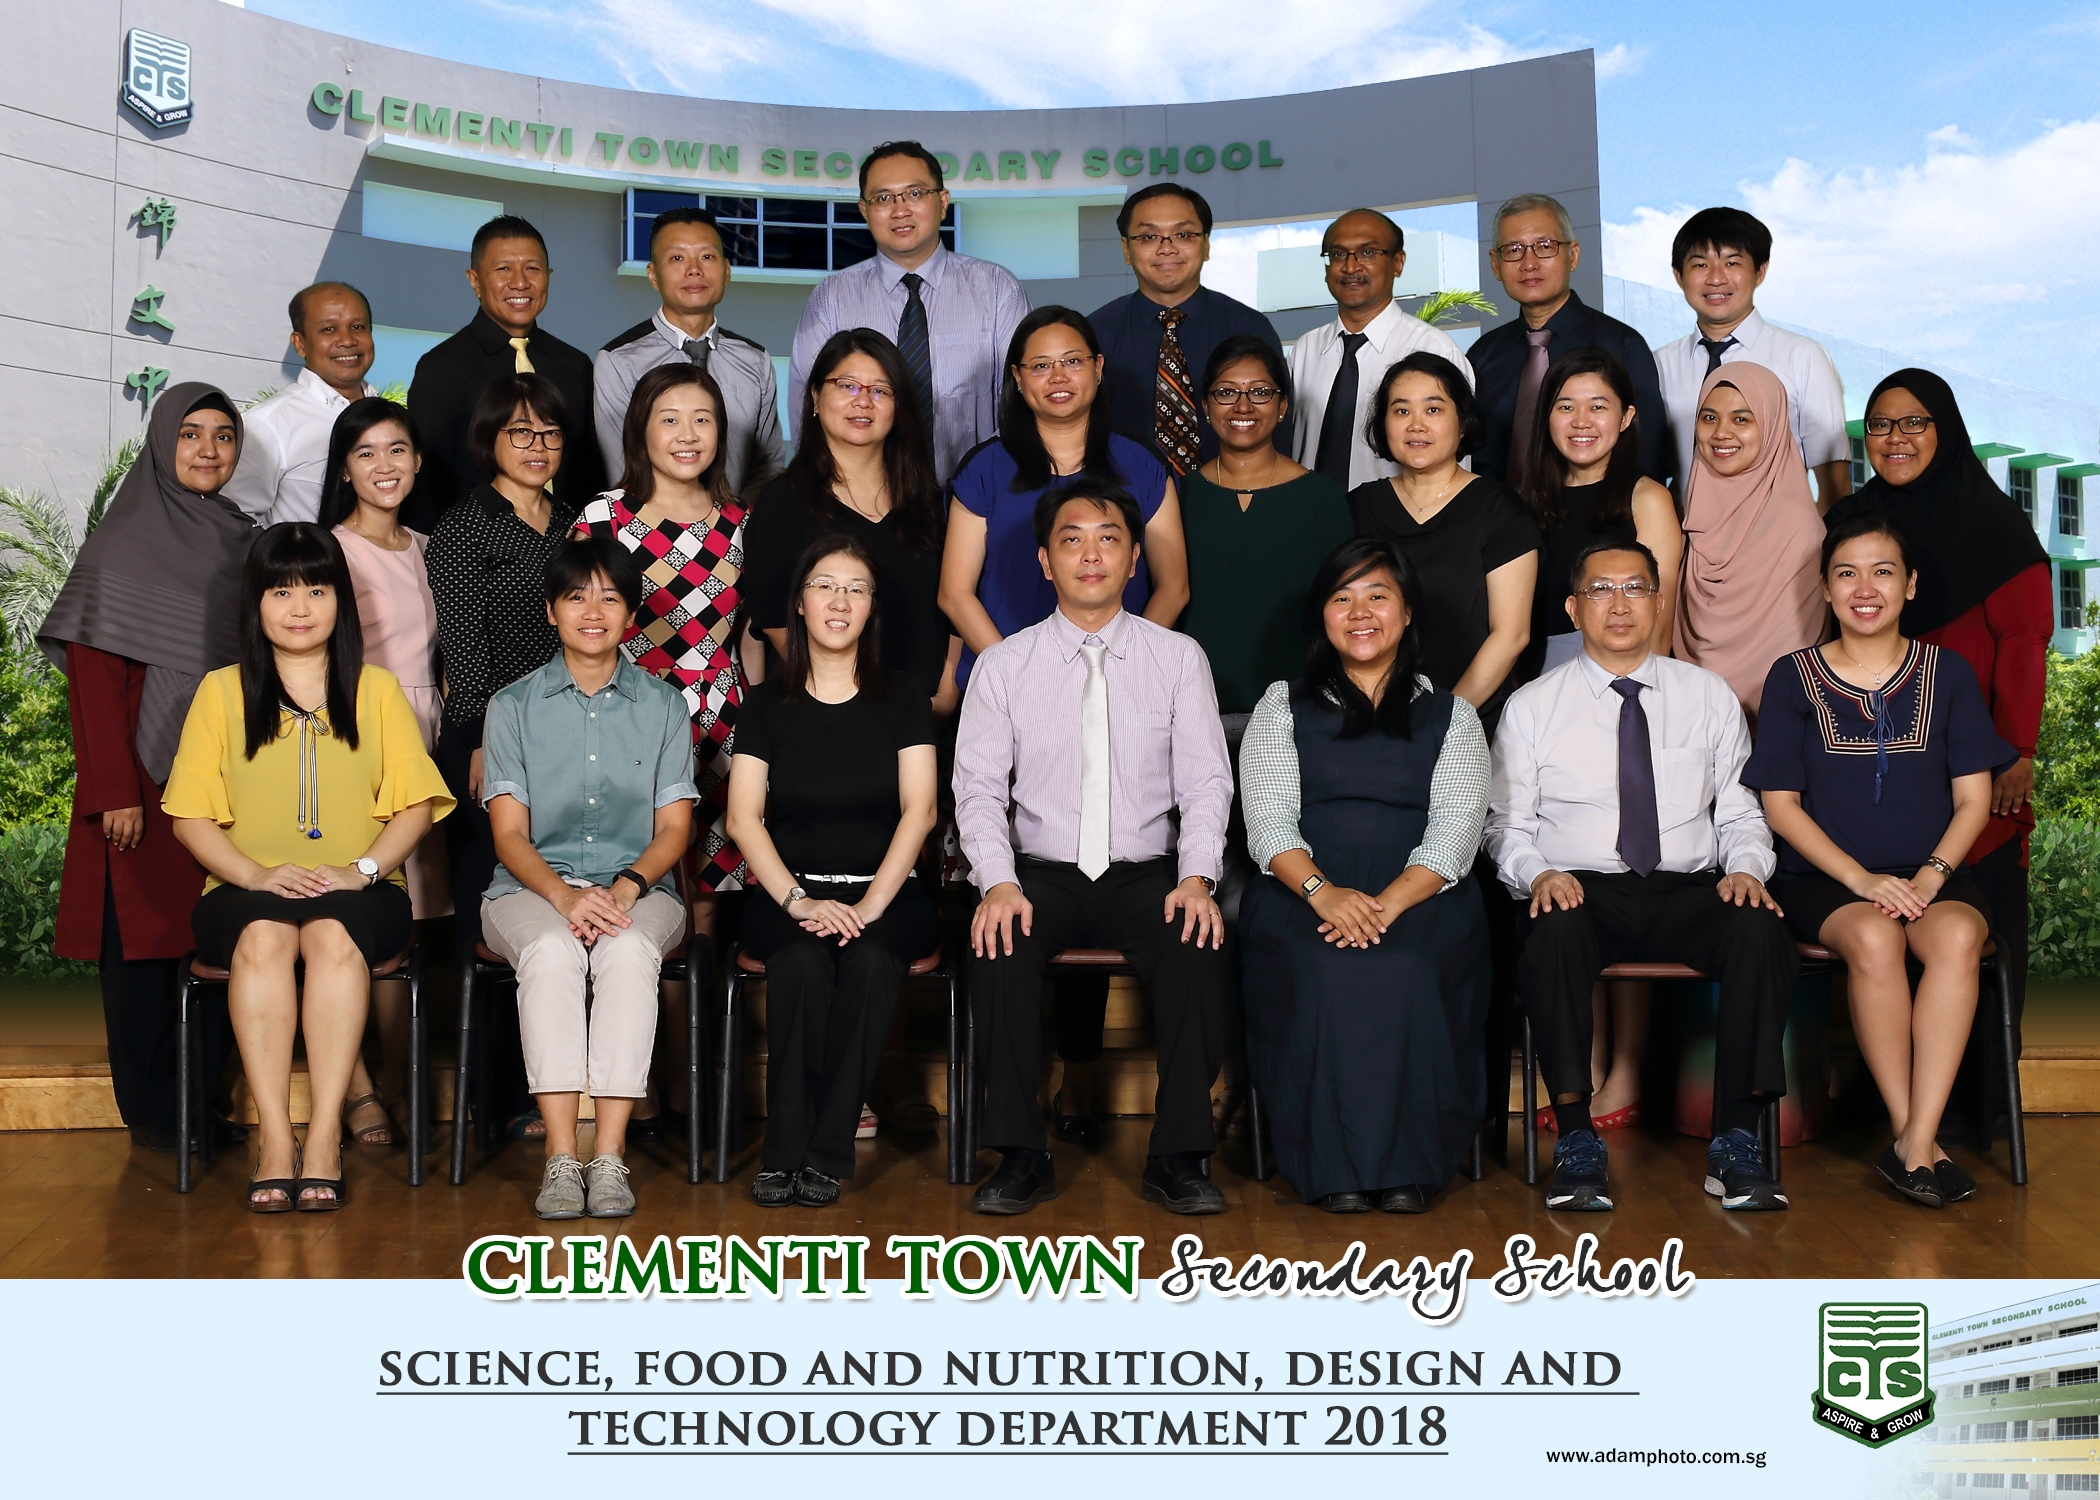 science, food and nutrition, design and technology department 2 (2).jpg